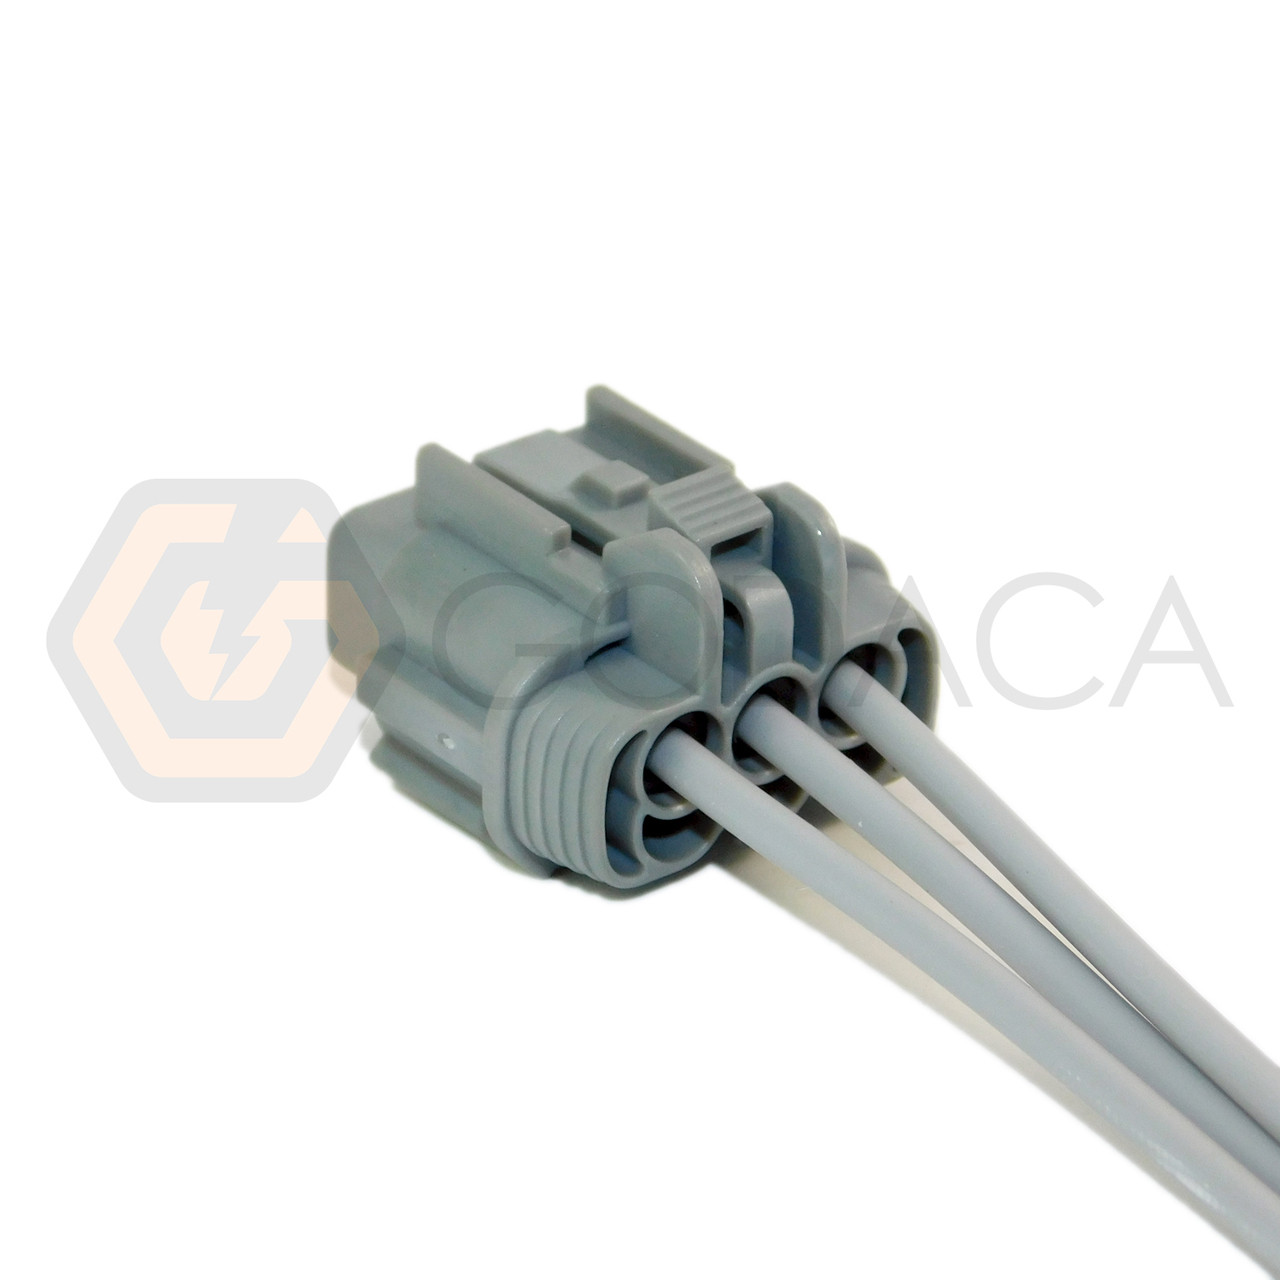 1x Connector 3-way for fuel tank sensor 3 pin PT2648 w//out wire